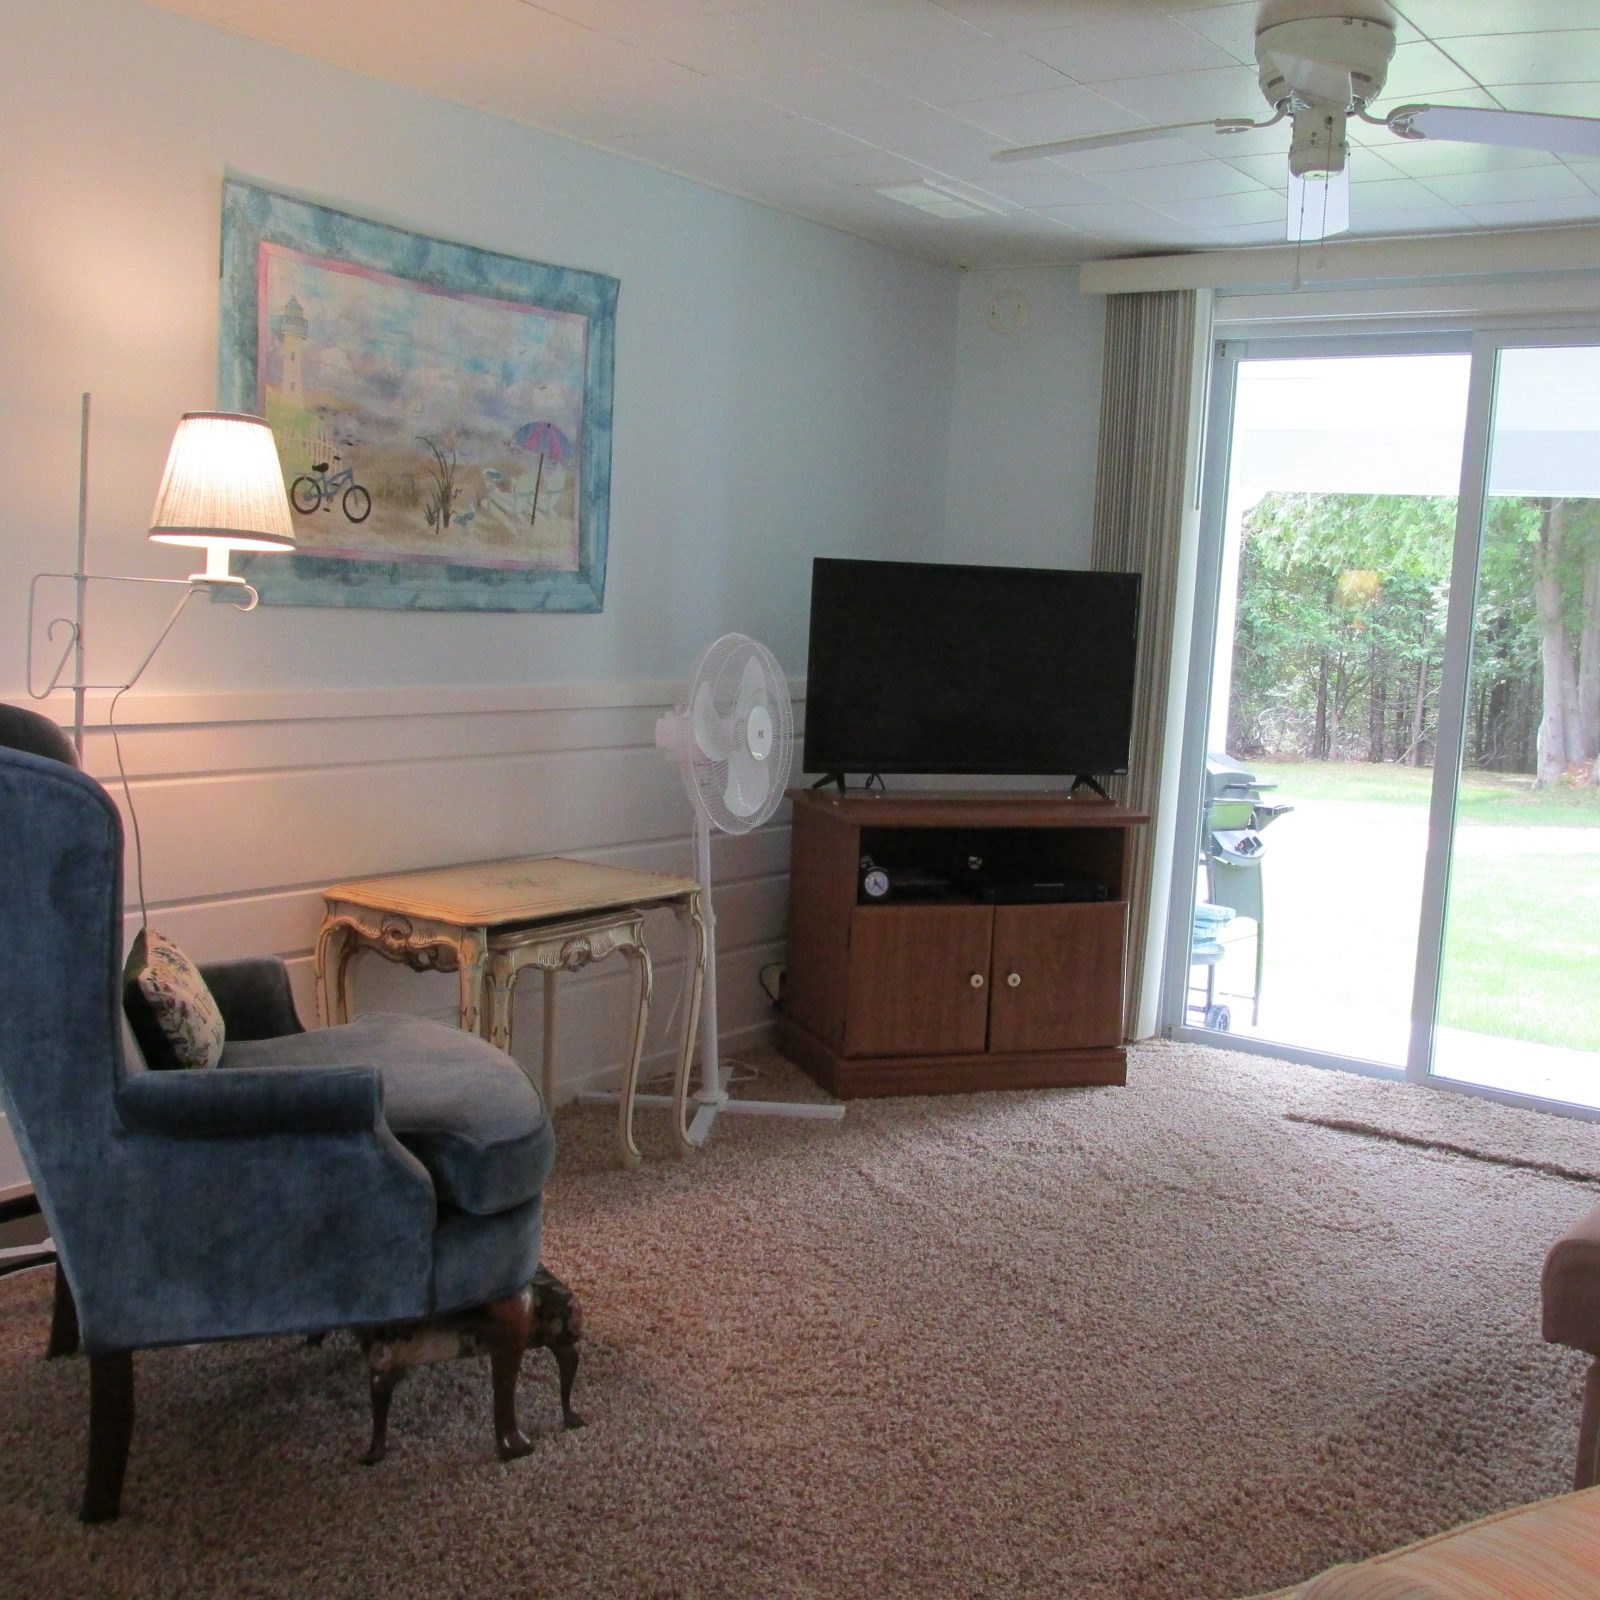 Rooms For Rent Bay Area: Sister Bay Cottage-Lundquist Realty & Vacation Rentals, Inc